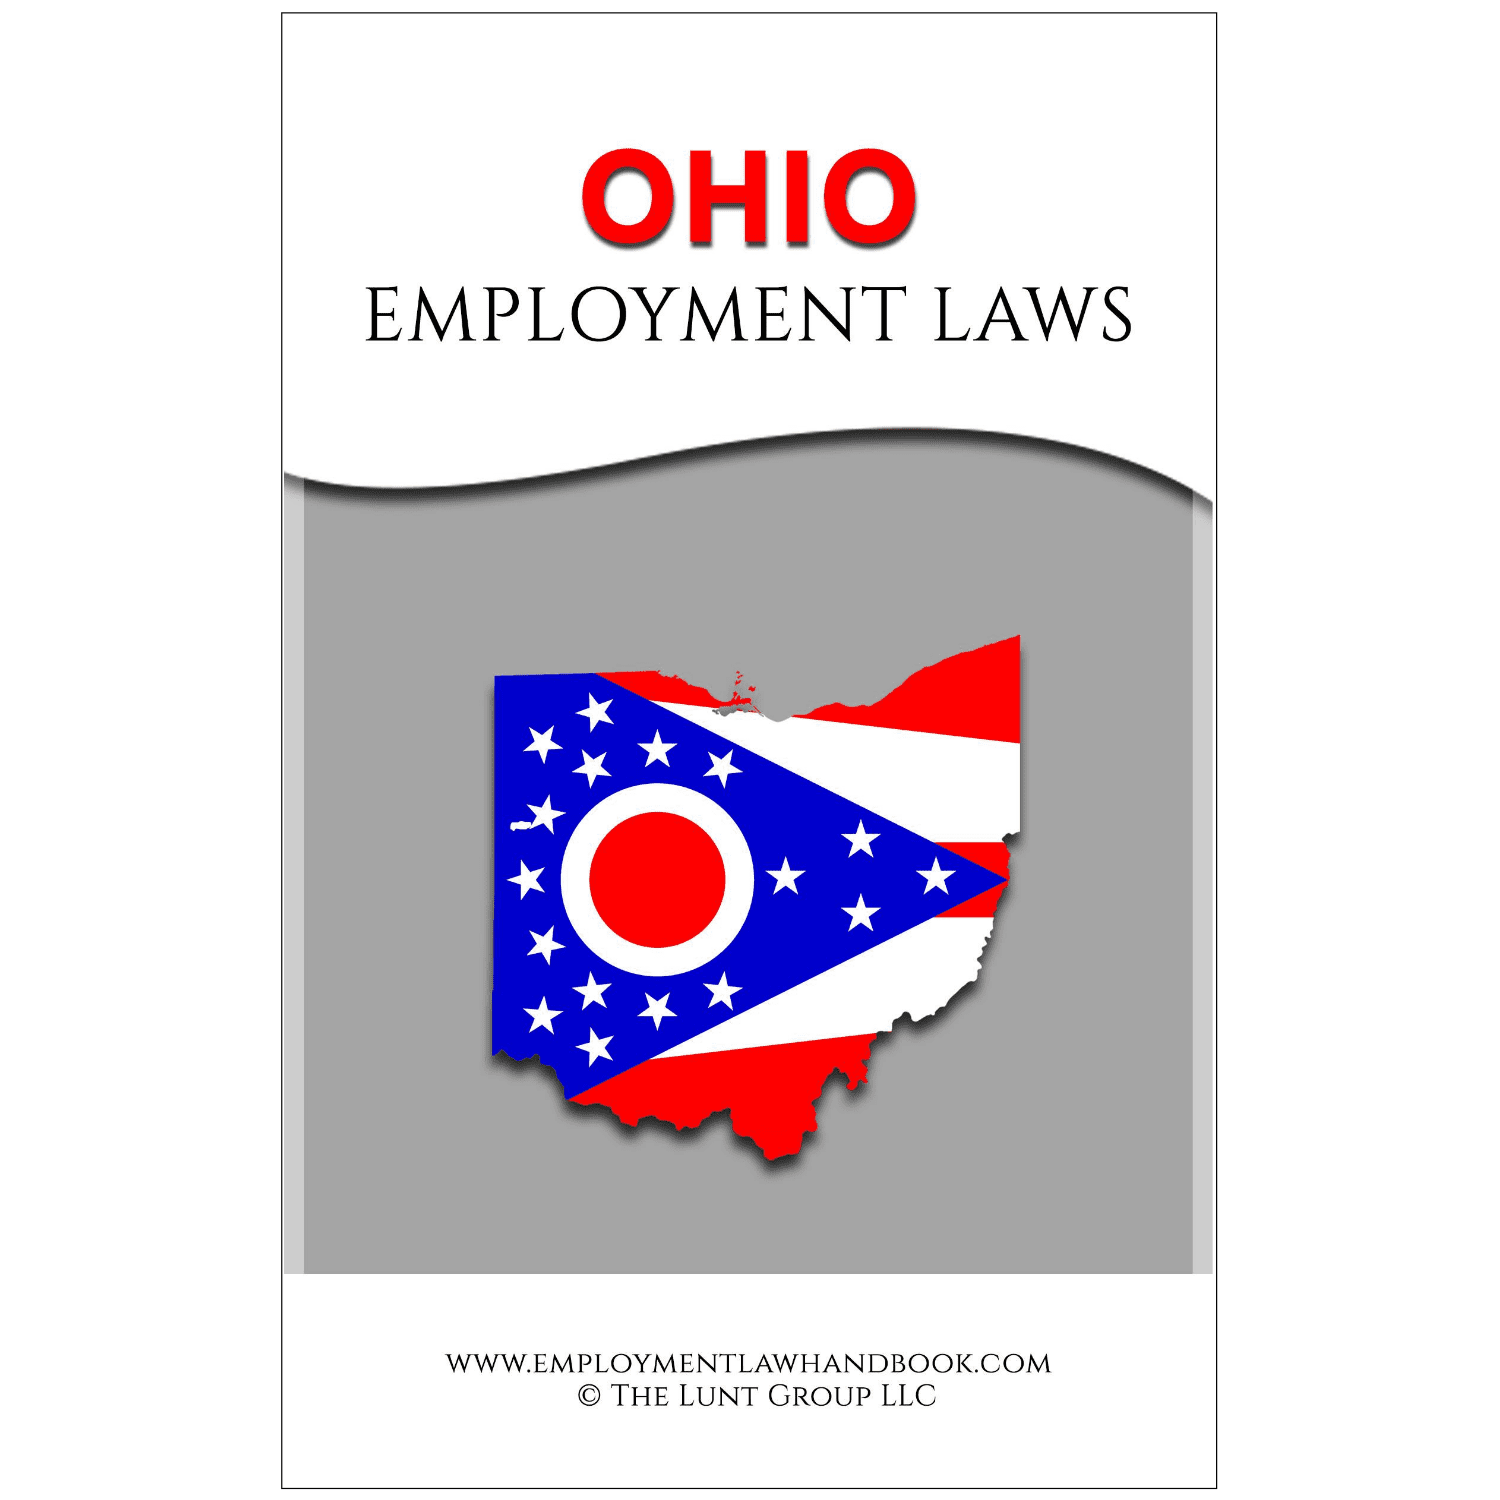 Ohio Employment Laws_sq